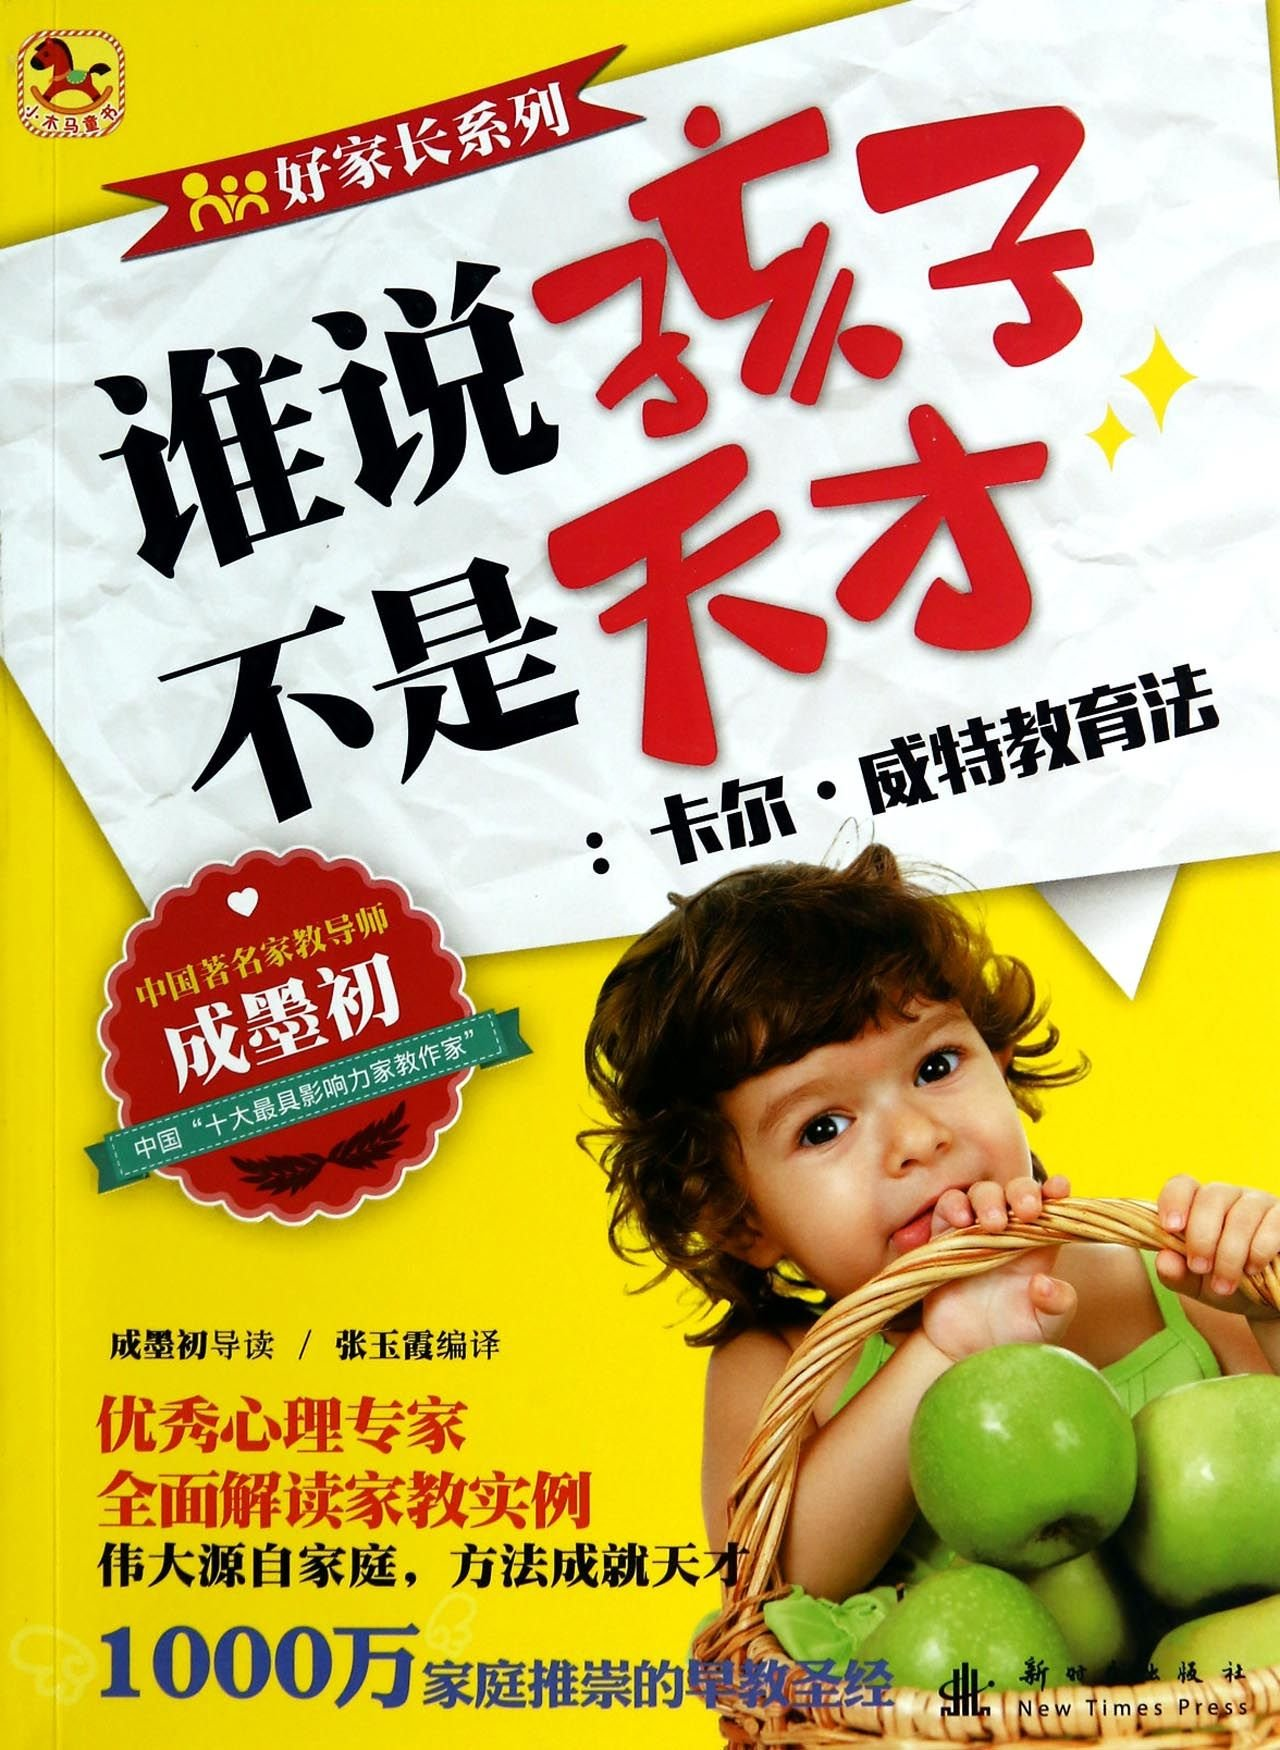 Download Small horse Children's Books Who says kids are not geniuses: Carl Witt Education Act(Chinese Edition) PDF